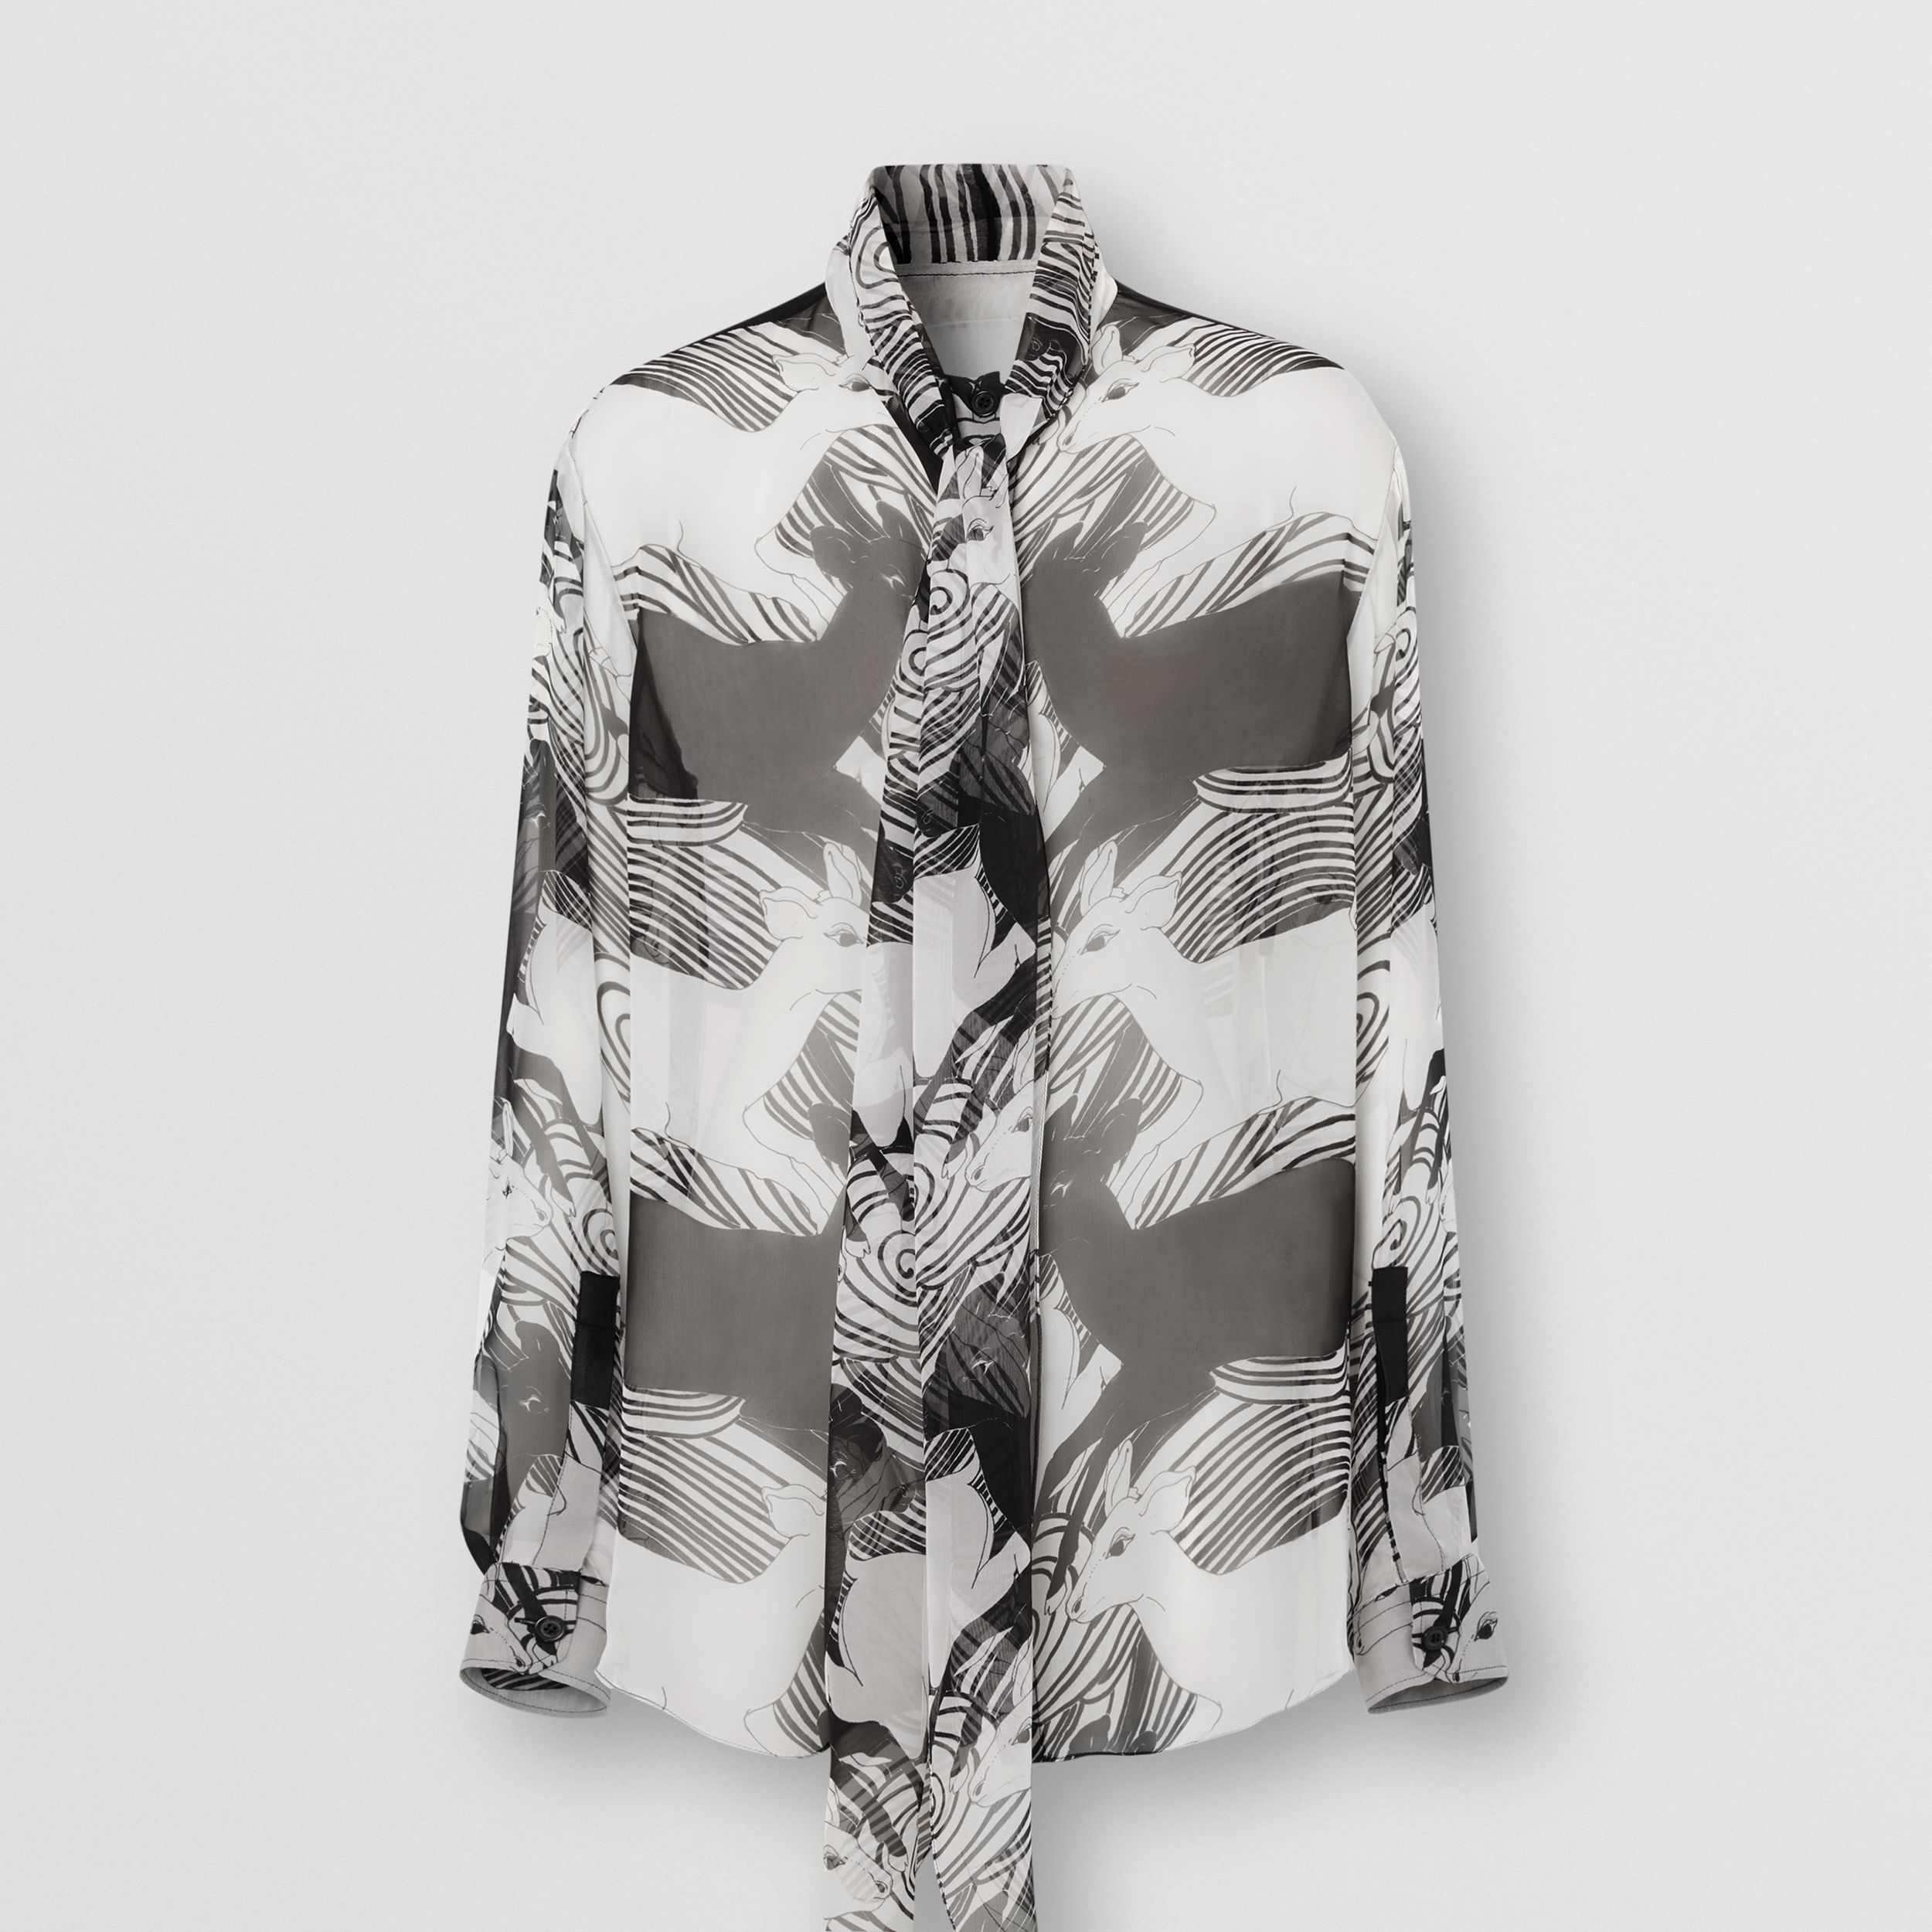 Deer Print Silk Chiffon Pussy-bow Blouse in Monochrome - Women | Burberry Australia - 4